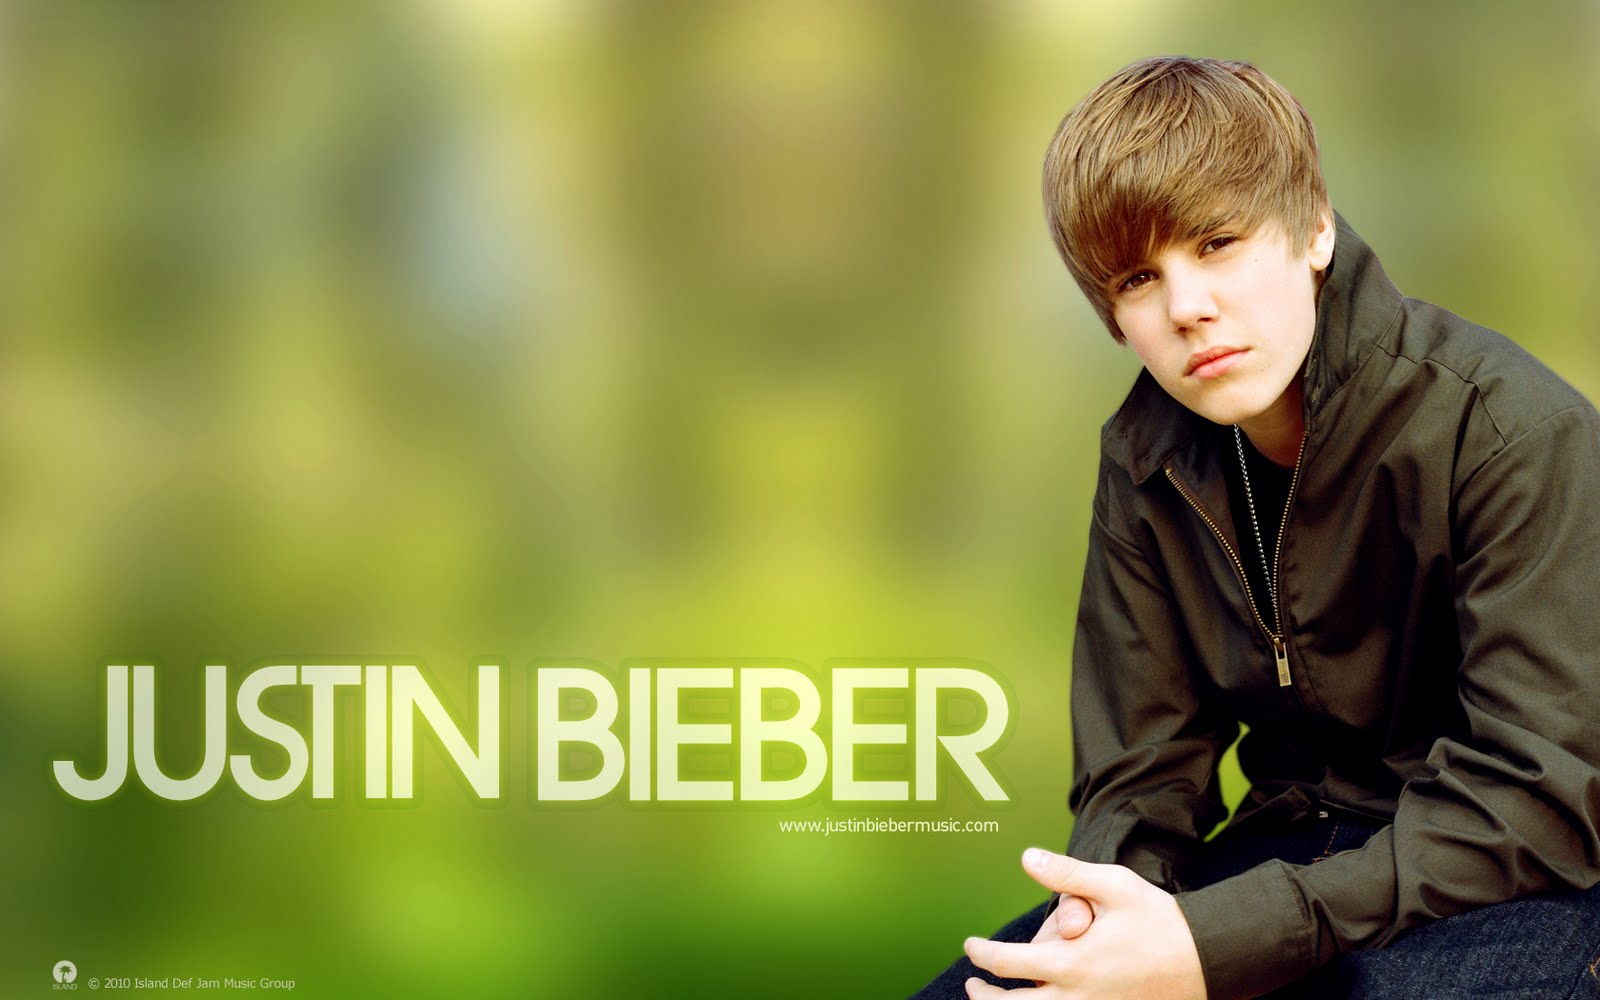 Justin Bieber Wallpaper Collection 2011 ~ Profile Pictures | Profile ...